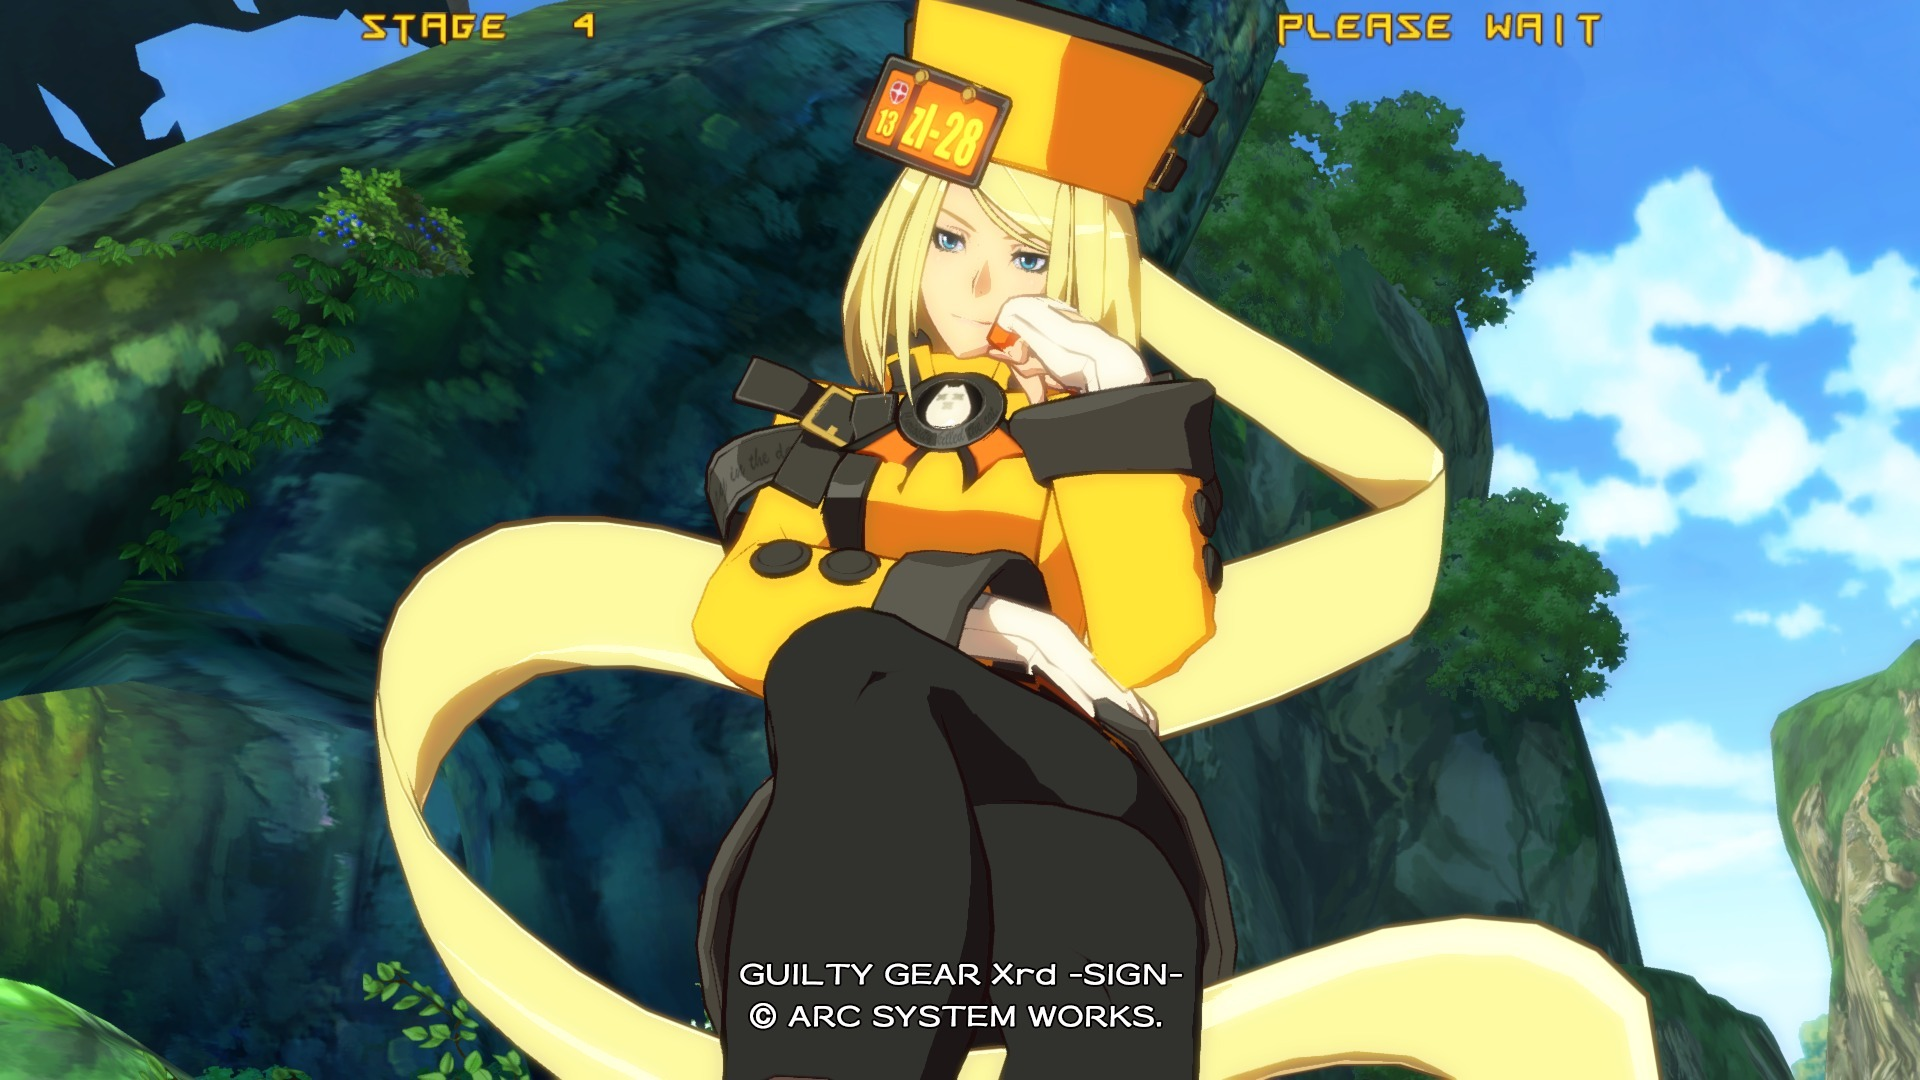 guiltygearxrd-sign-_2l2yfc.jpg